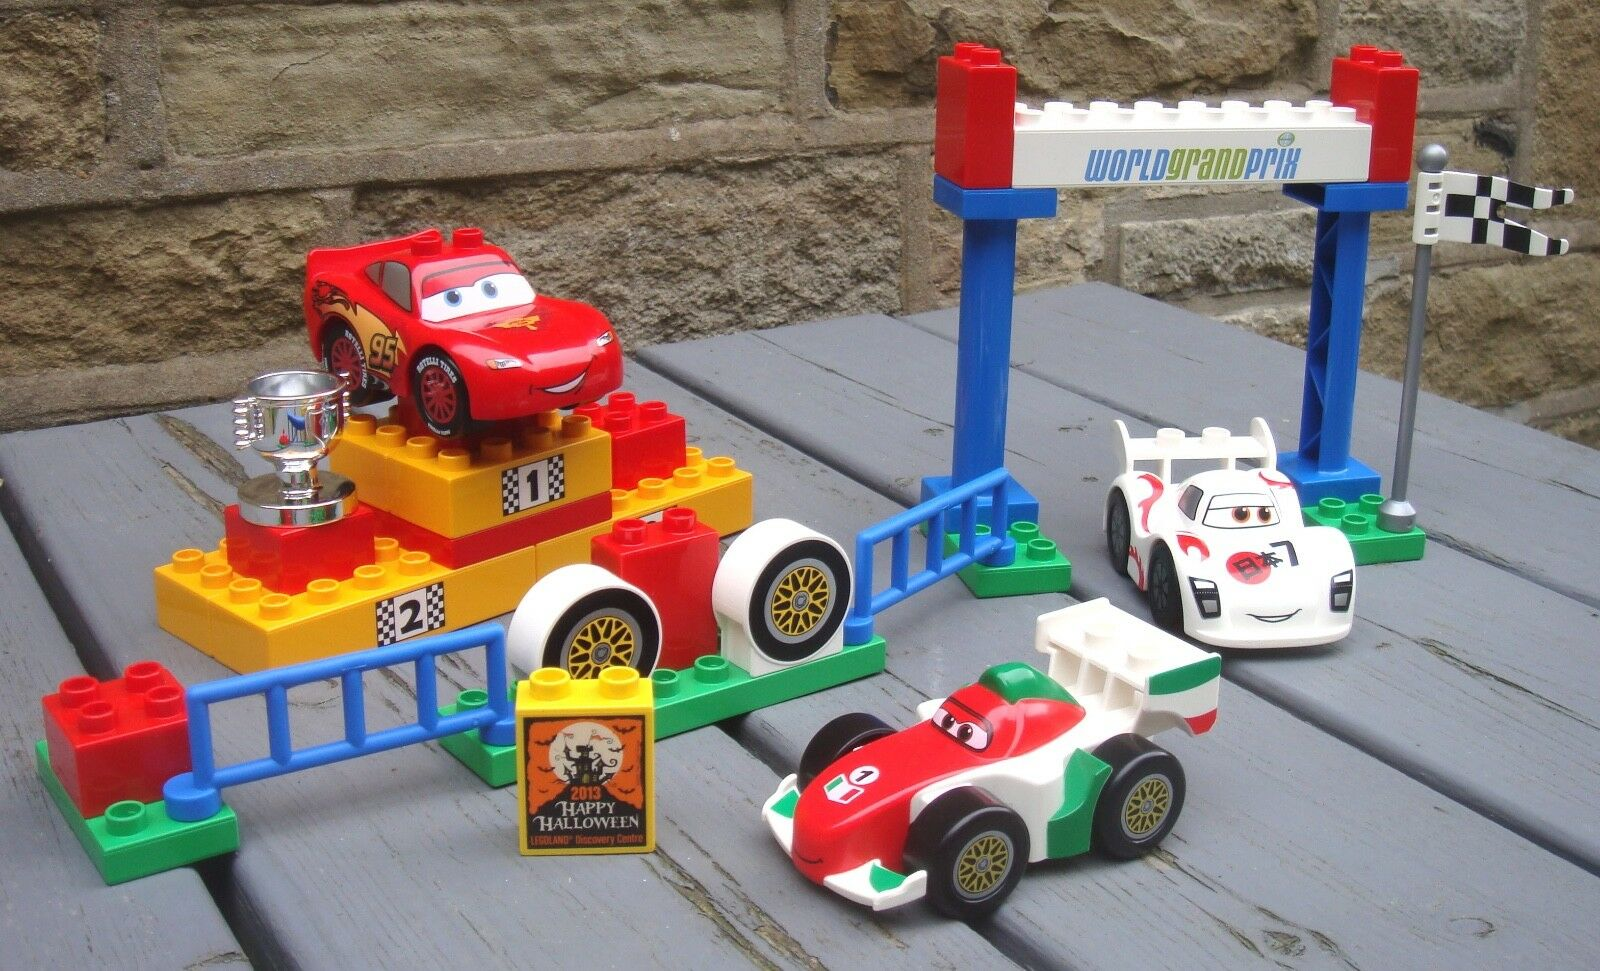 VINTAGE LEGO DUPLO CARS WORLD GRAND PRIX set 5839 (2011)